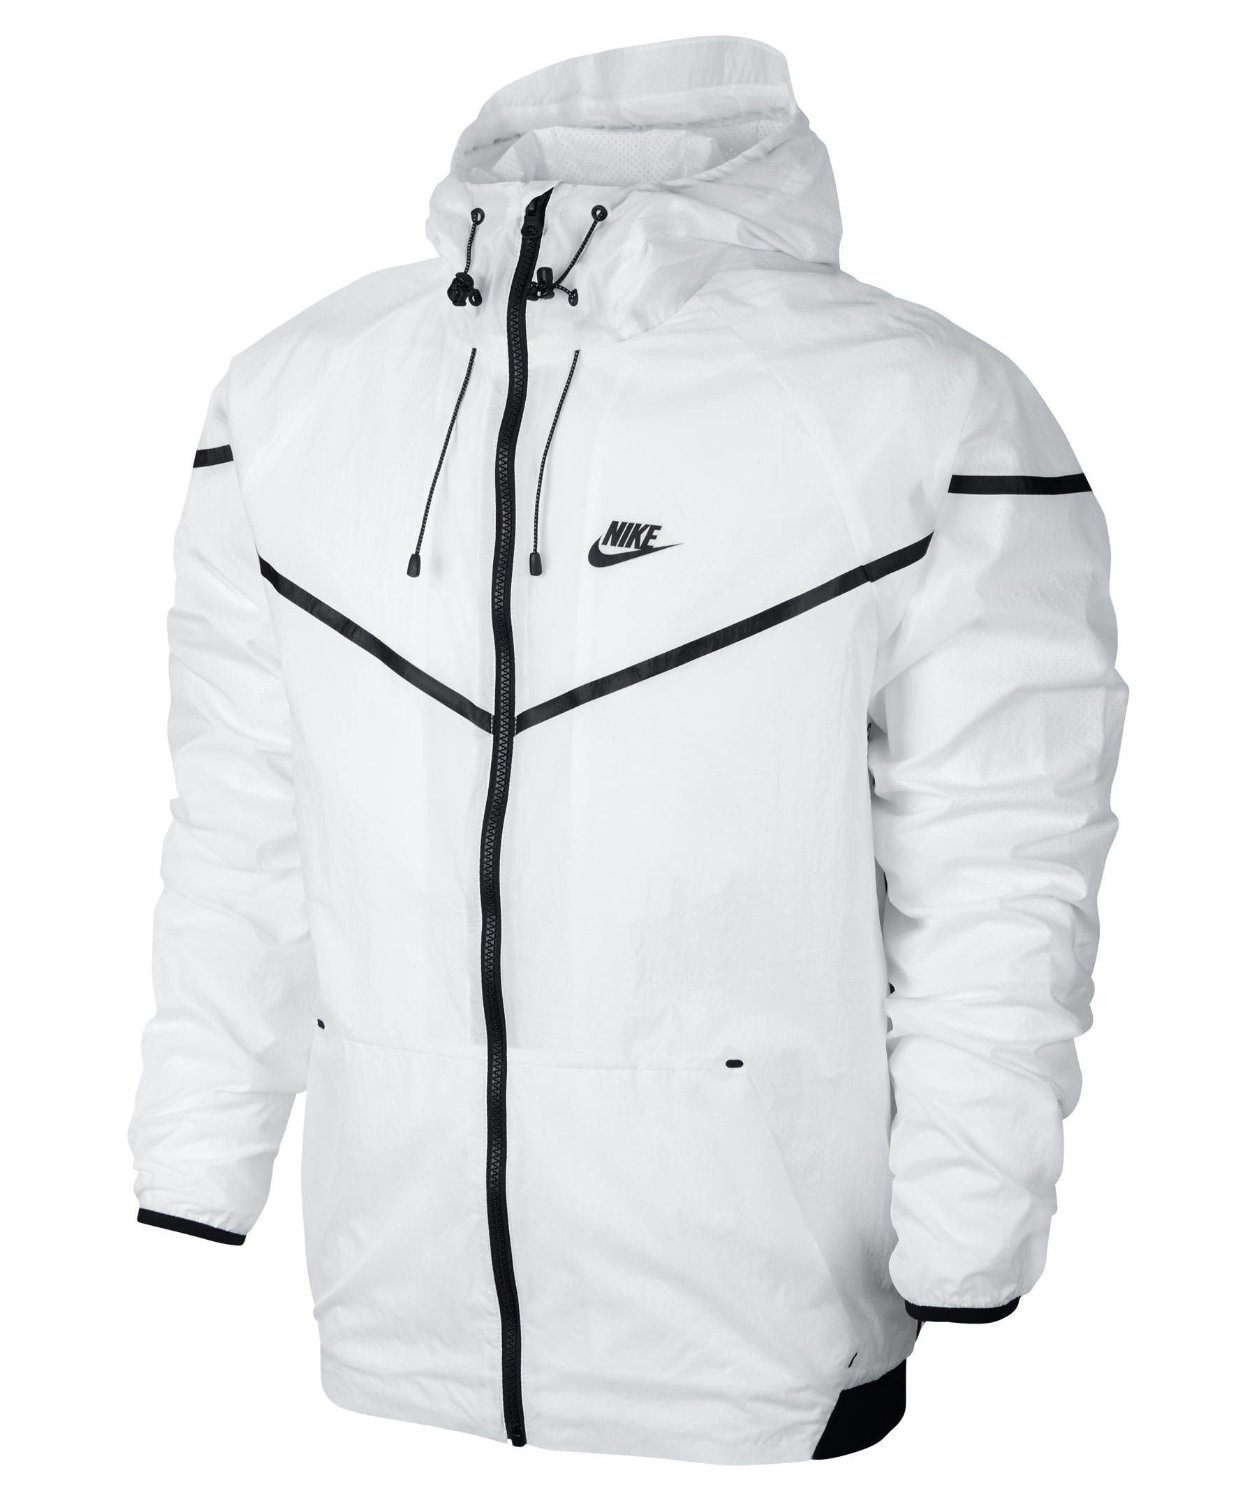 com: Nike Mens Tech Aeroshield Windrunner Jacket White/Black ...